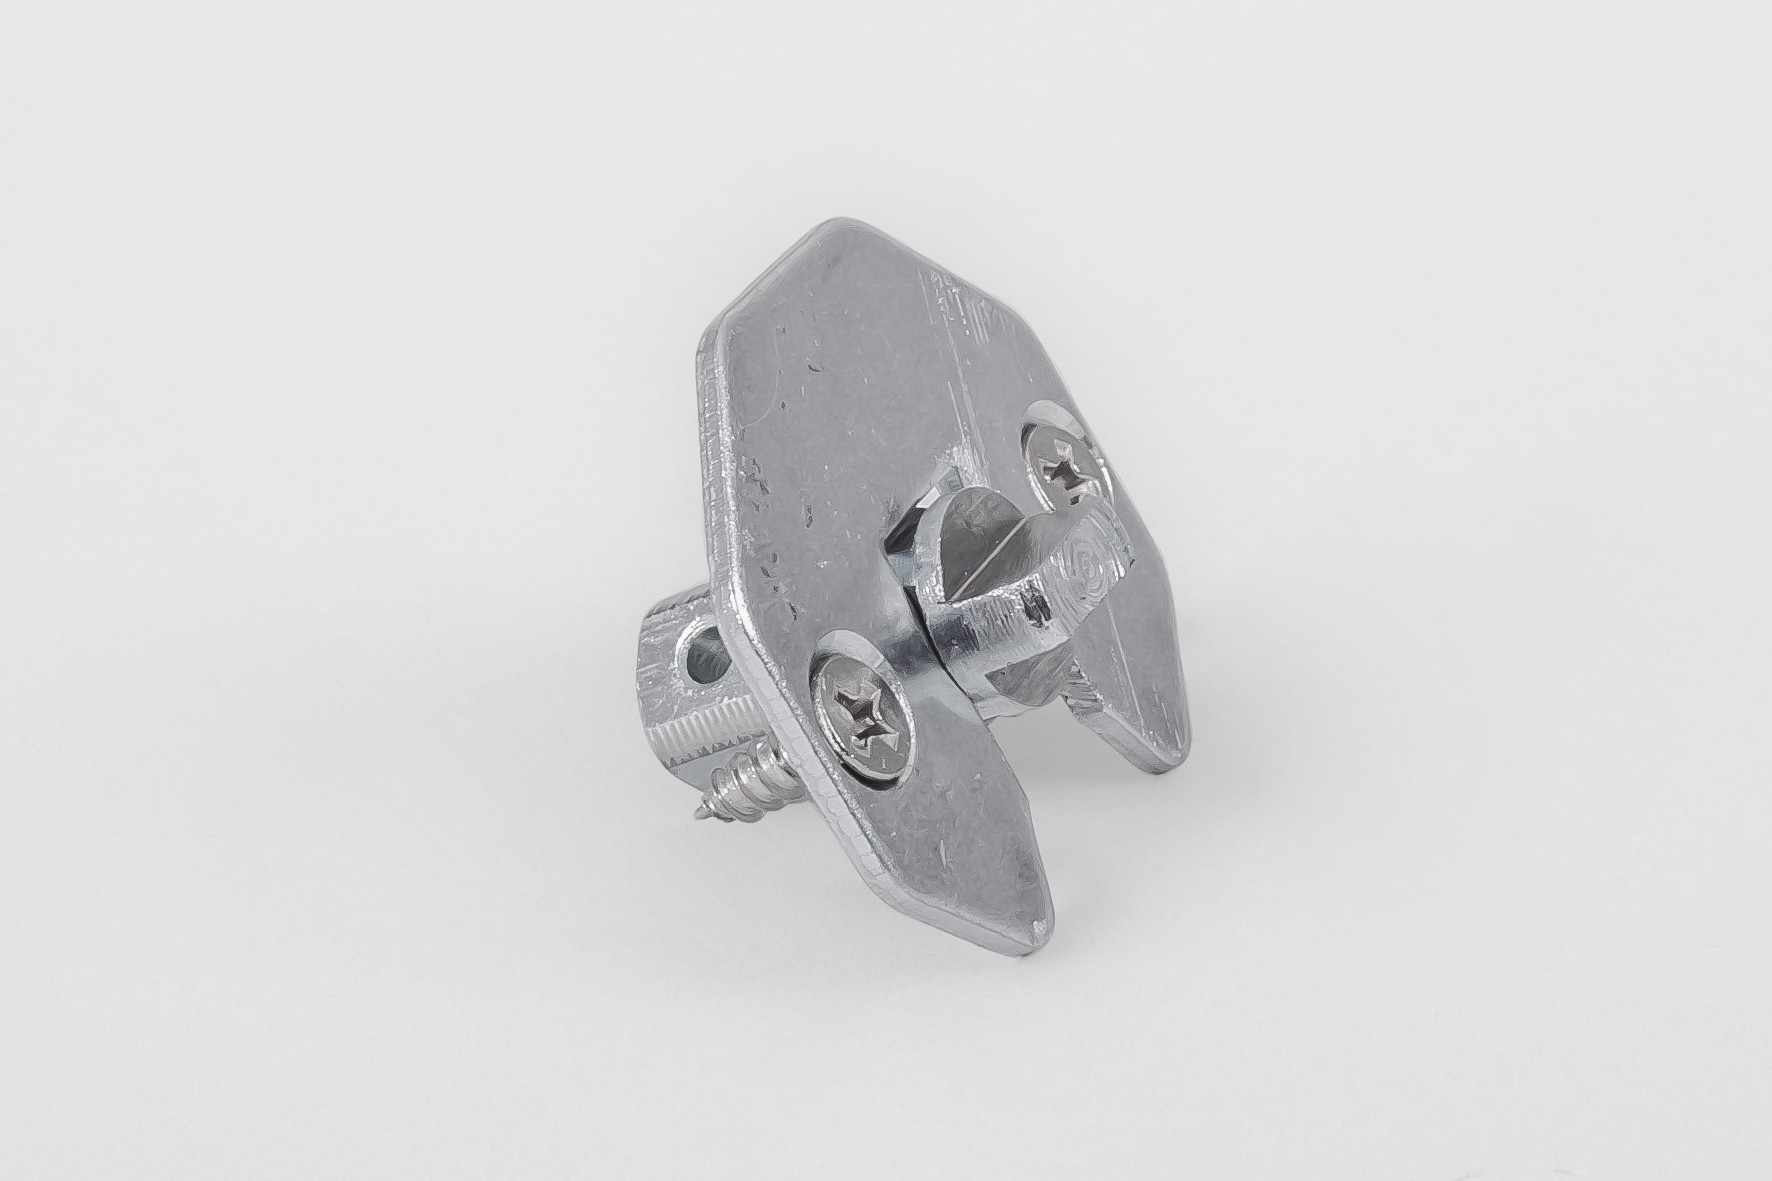 Metal mount for roller blinds, for 35 series motors